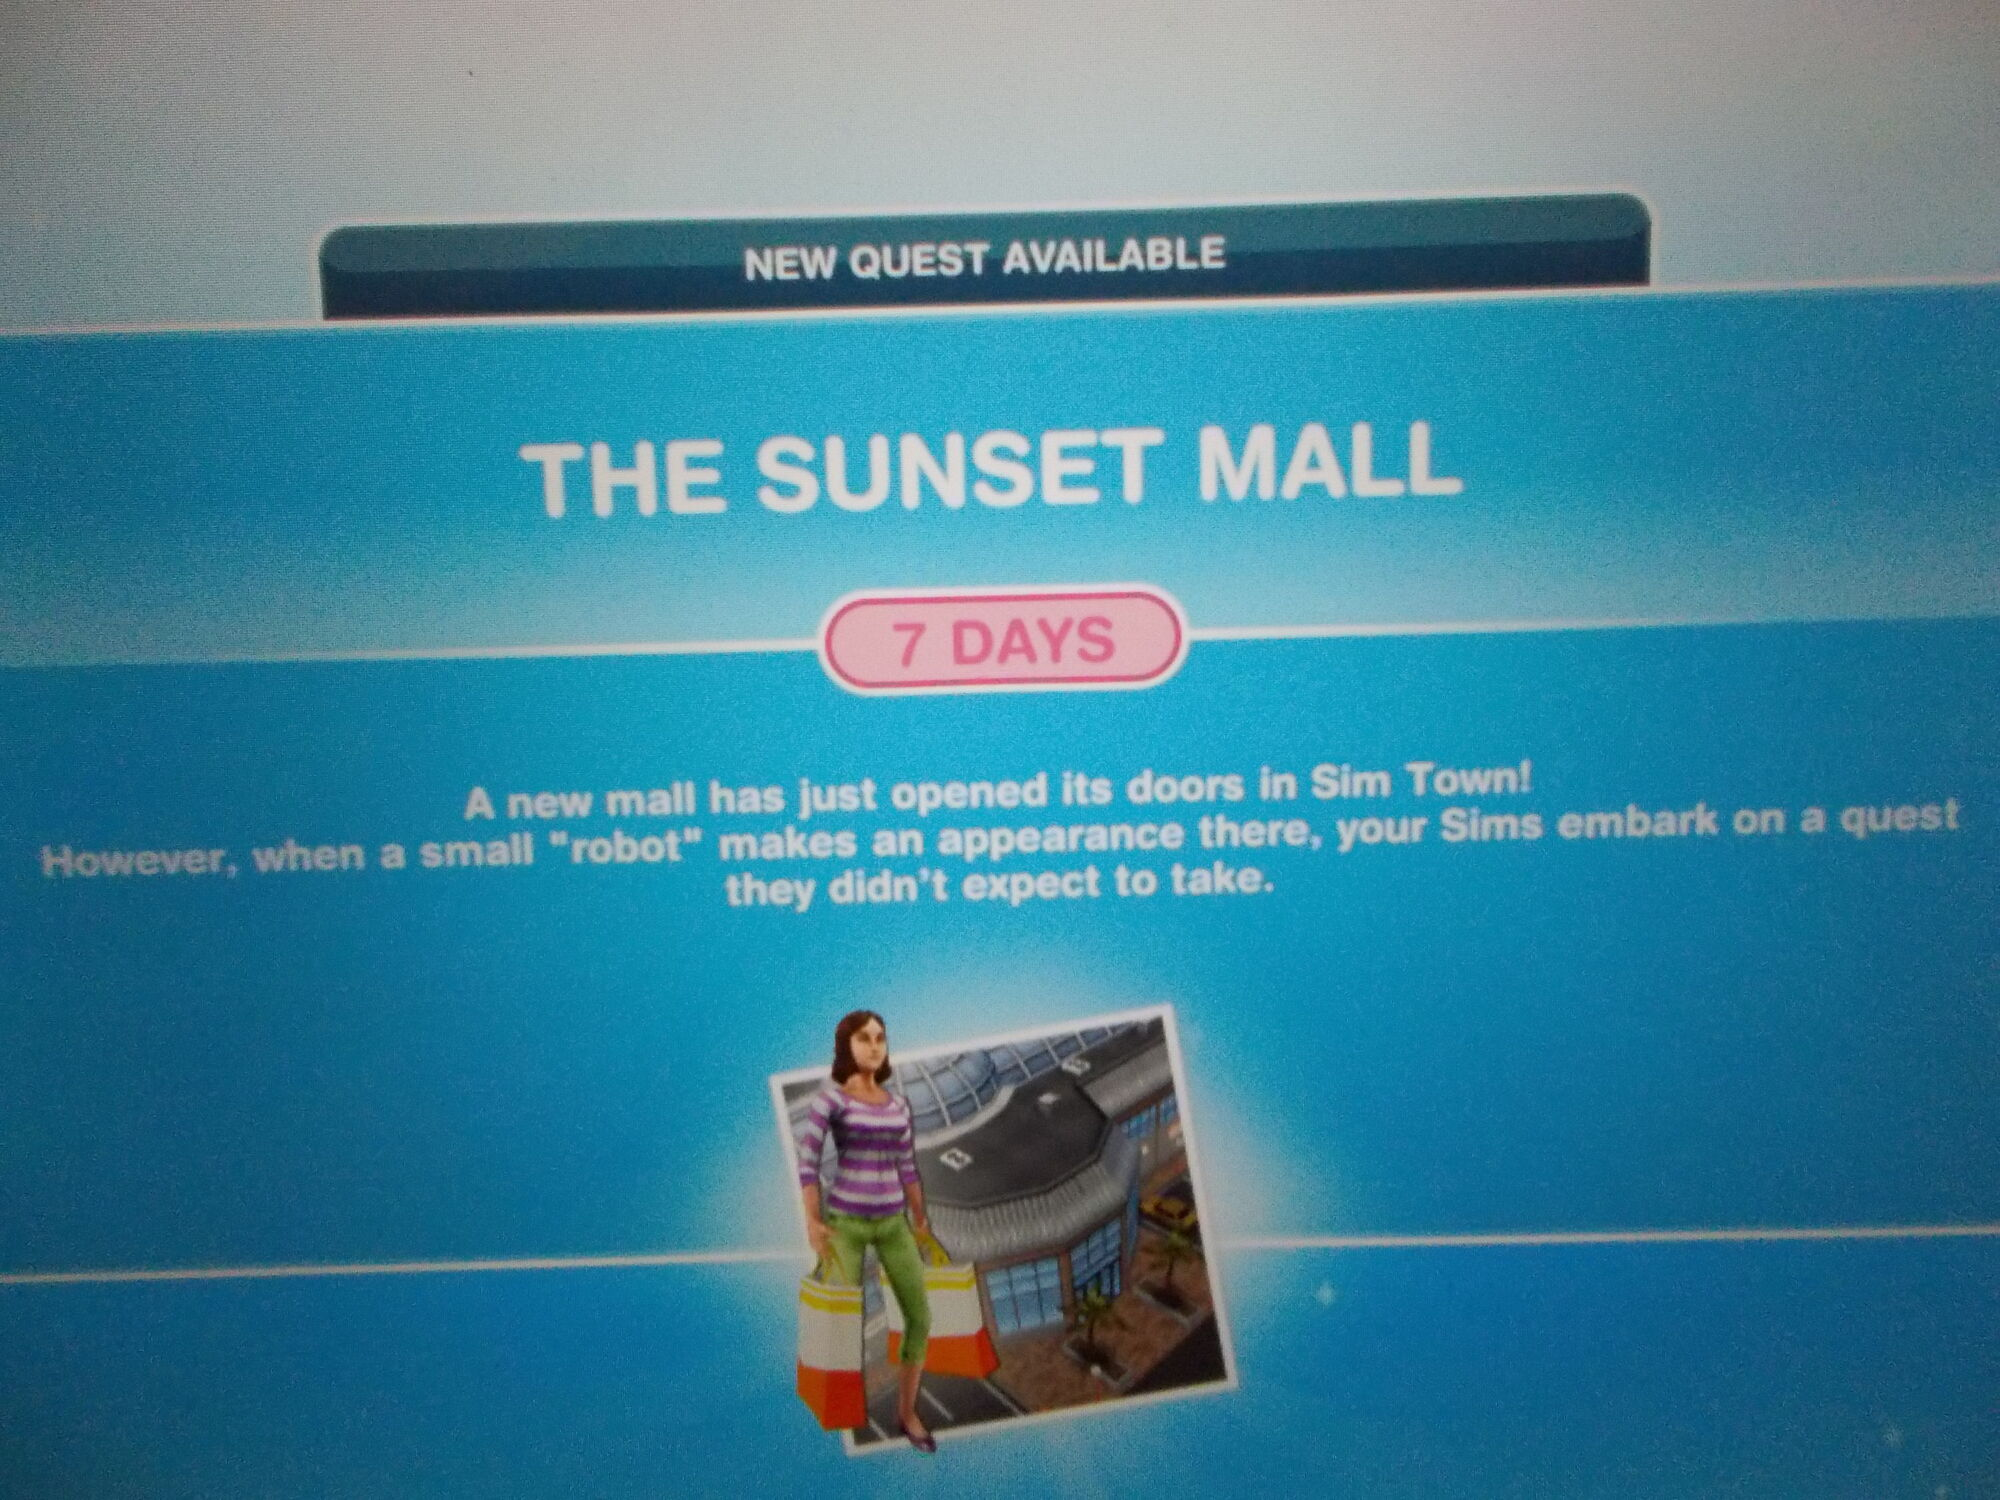 Wondrous Sunset Mall Quest The Sims Freeplay Wiki Fandom Download Free Architecture Designs Lectubocepmadebymaigaardcom